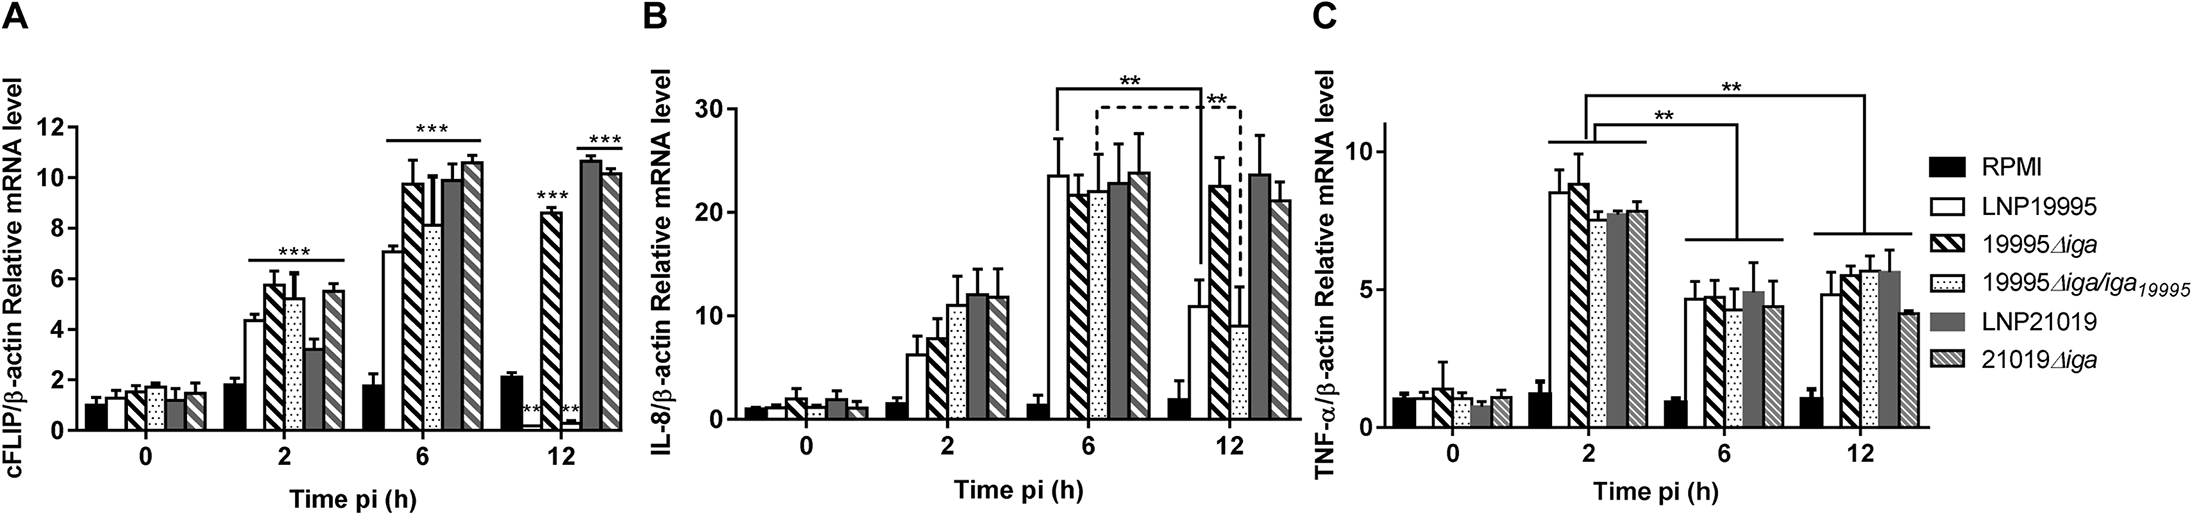 ST-11 IgA protease-mediated nuclear cleavage of p65/RelA alters selectively expression of NF-κB responsive genes.